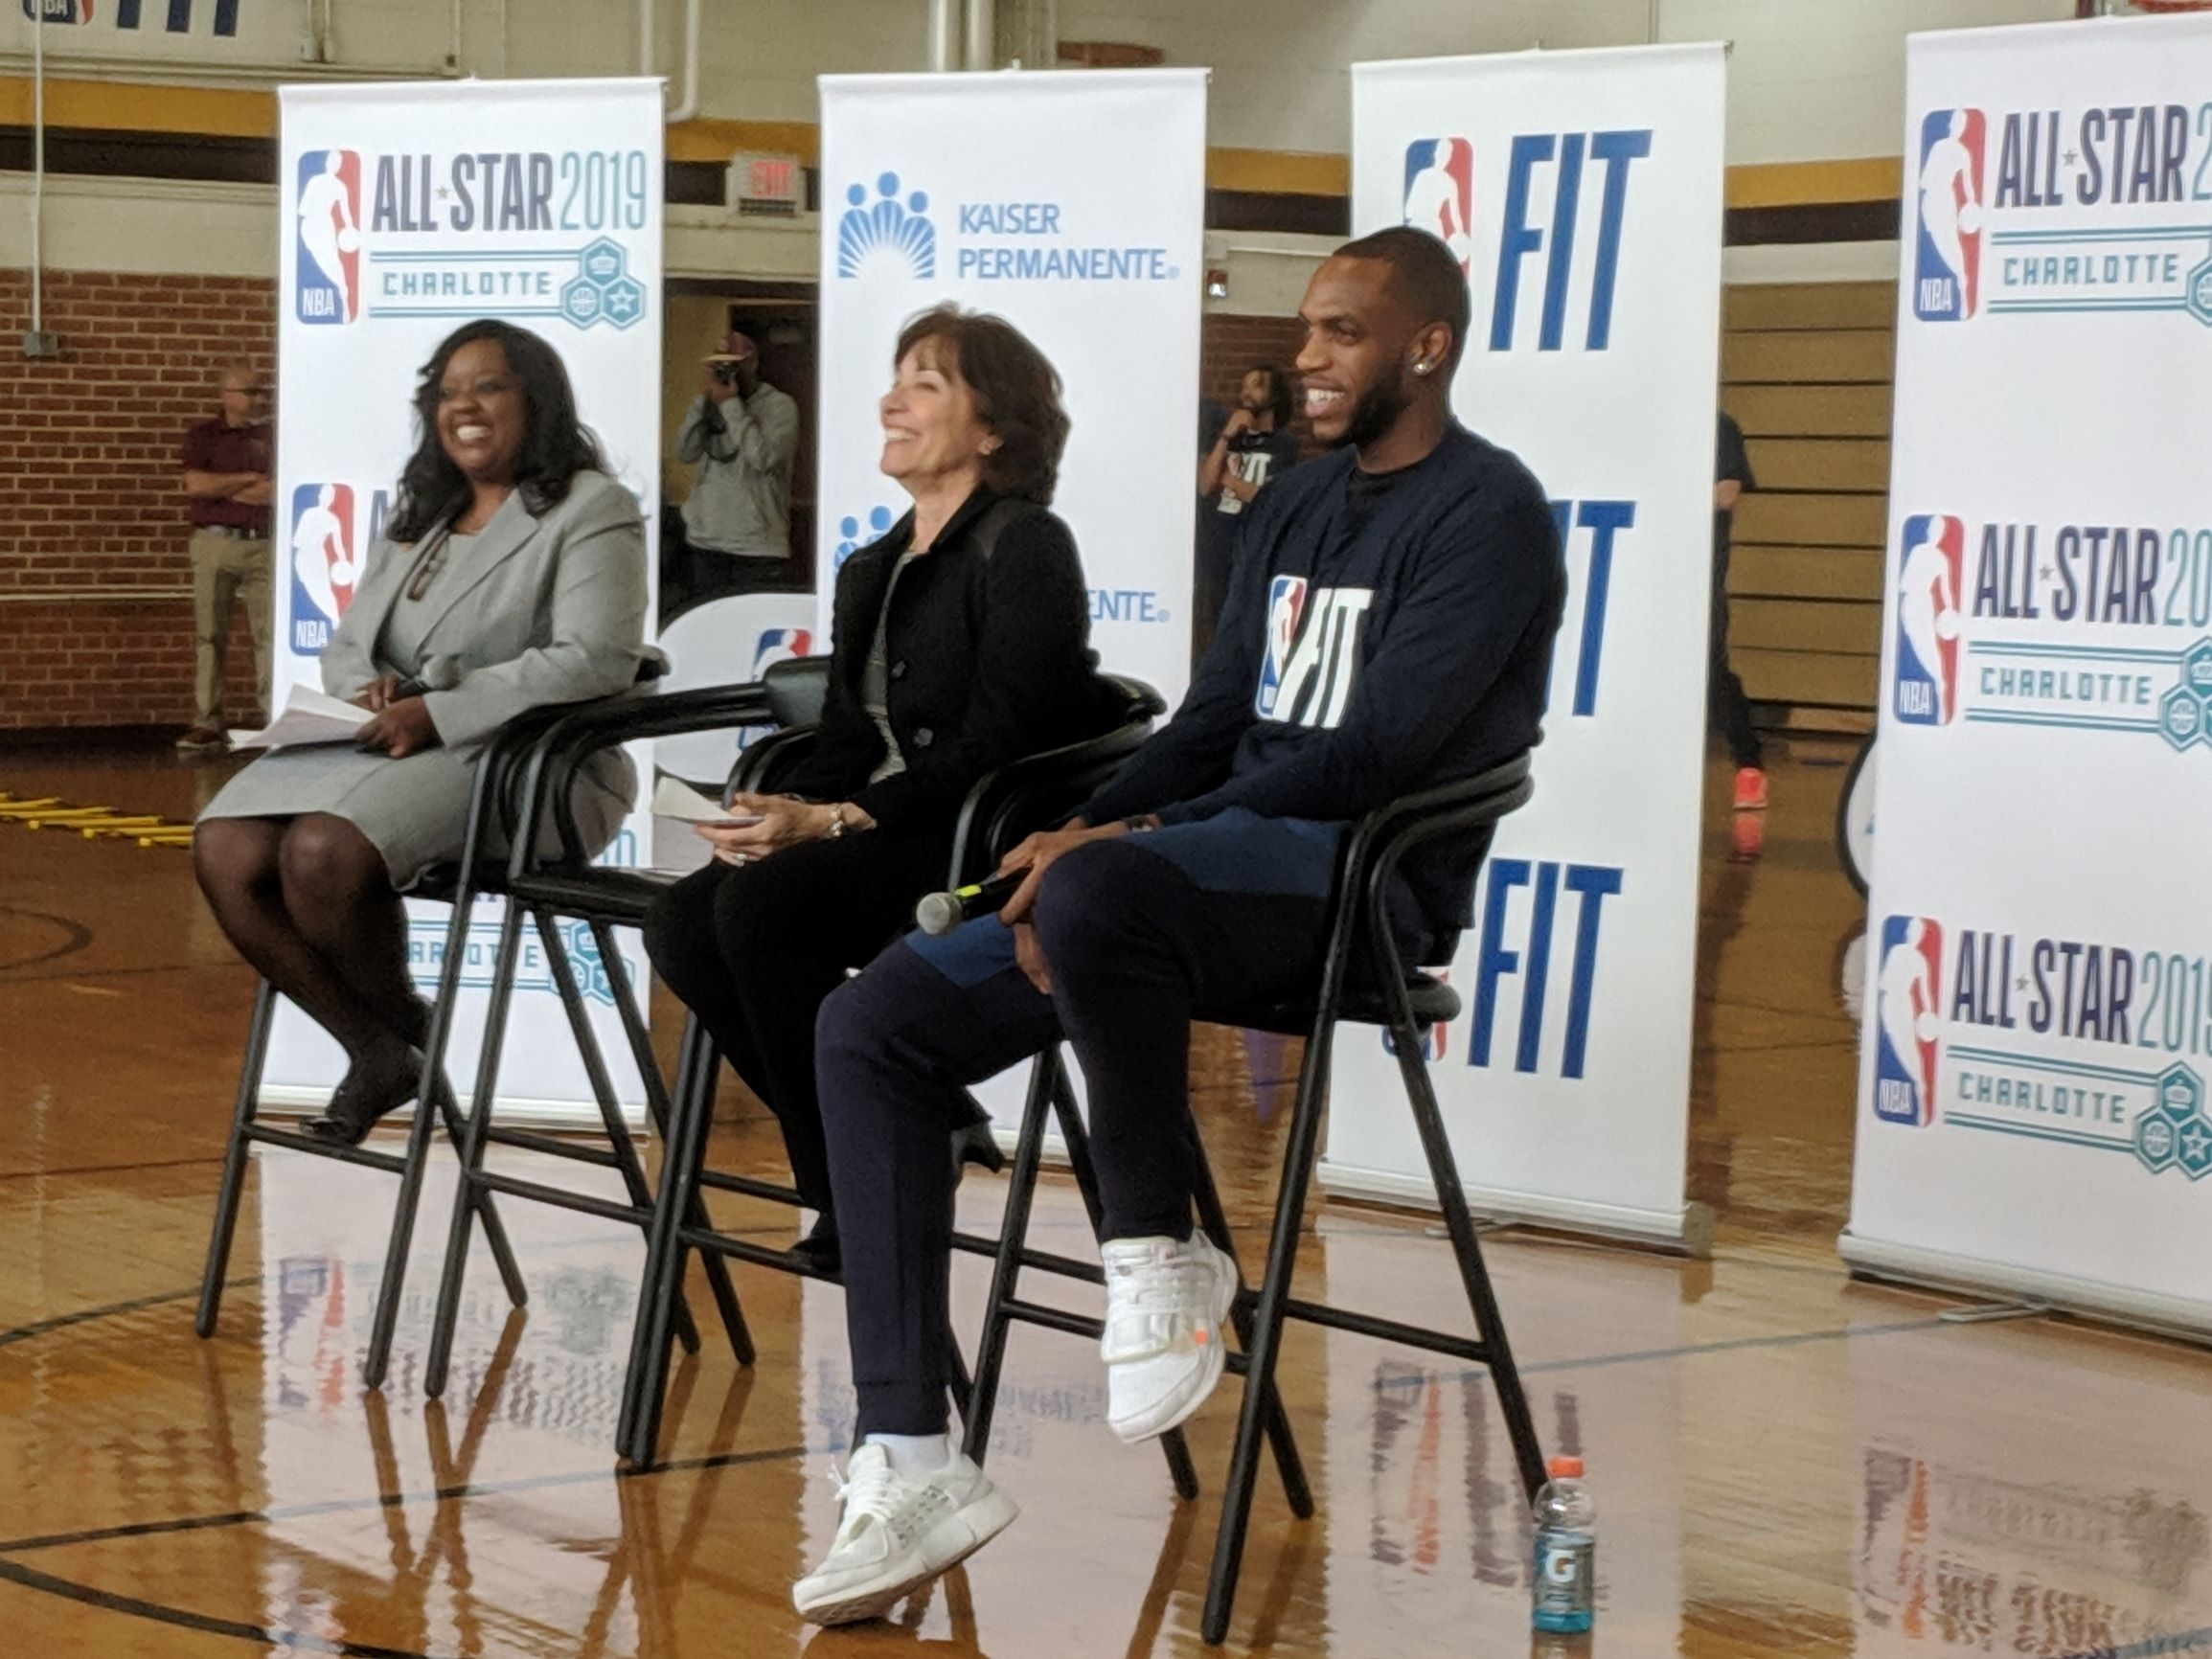 fe50068629b8 2019 NBA All-Star Weekend  Day 1 recap - Q City Metro